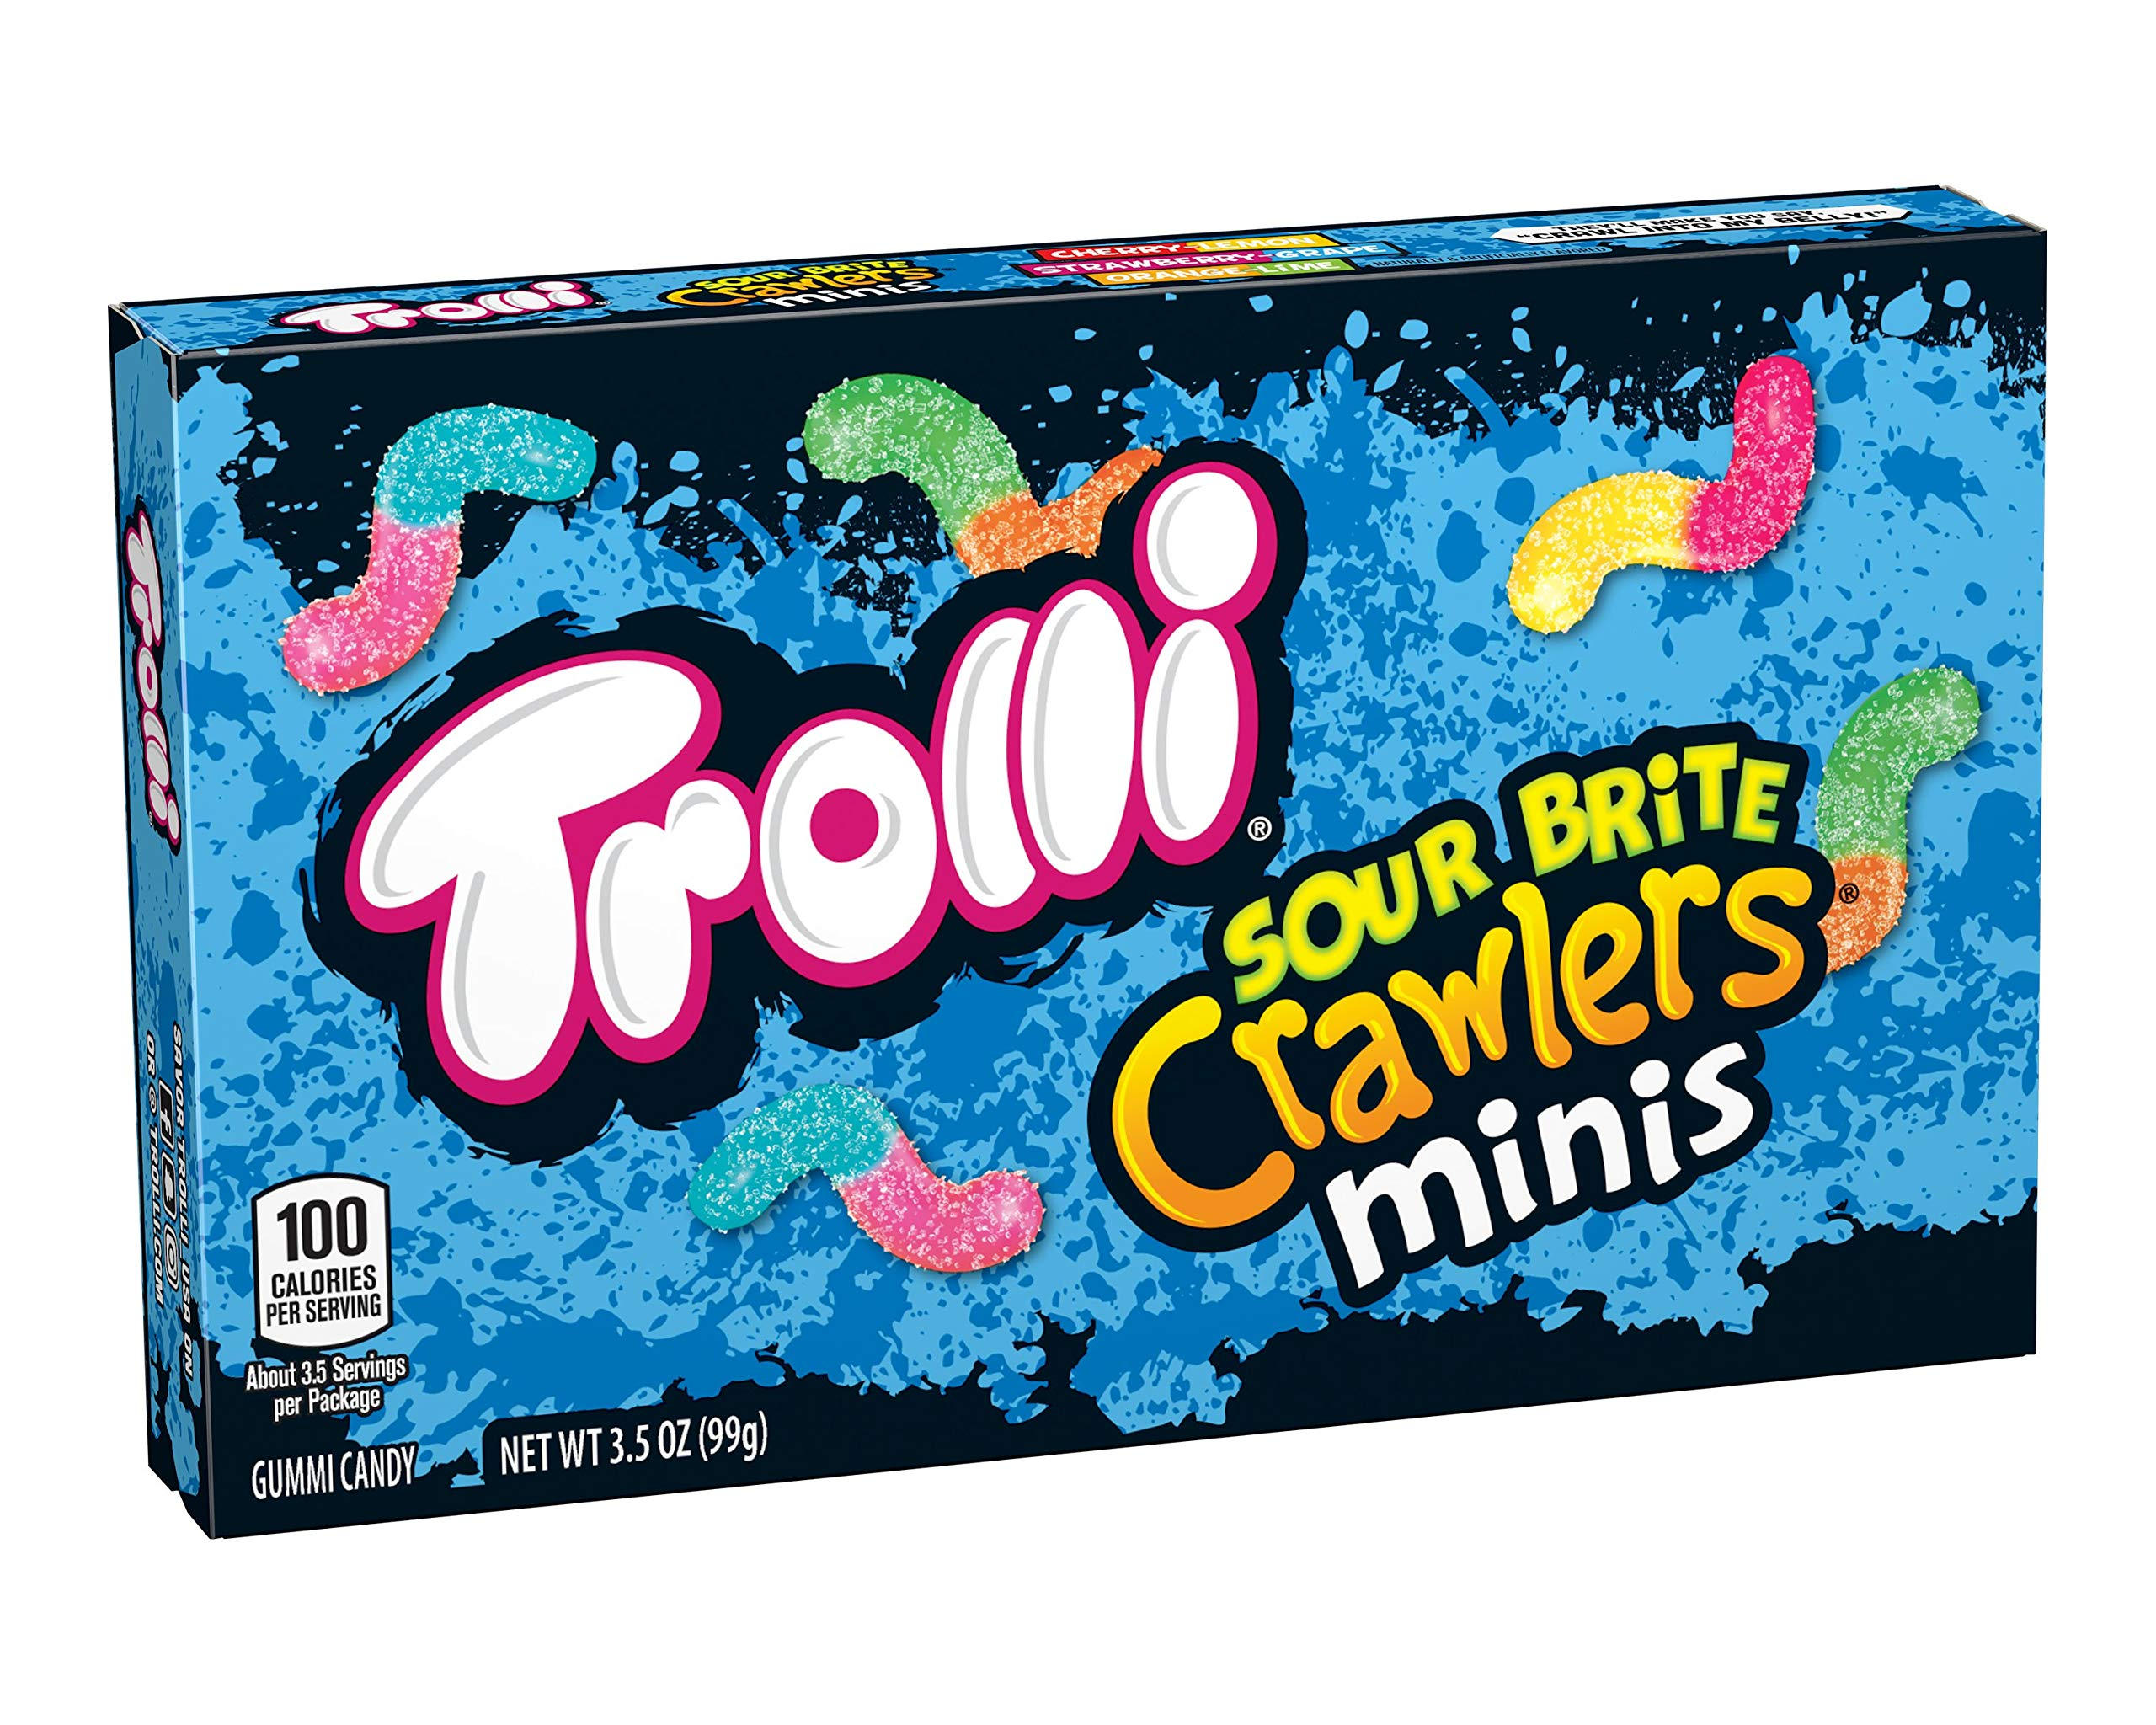 Trolli Sour Brite Crawlers Gummy Worms, 3.5 Ounce Theatre Box (Pack of 12) Sour Gummy Worms by Trolli